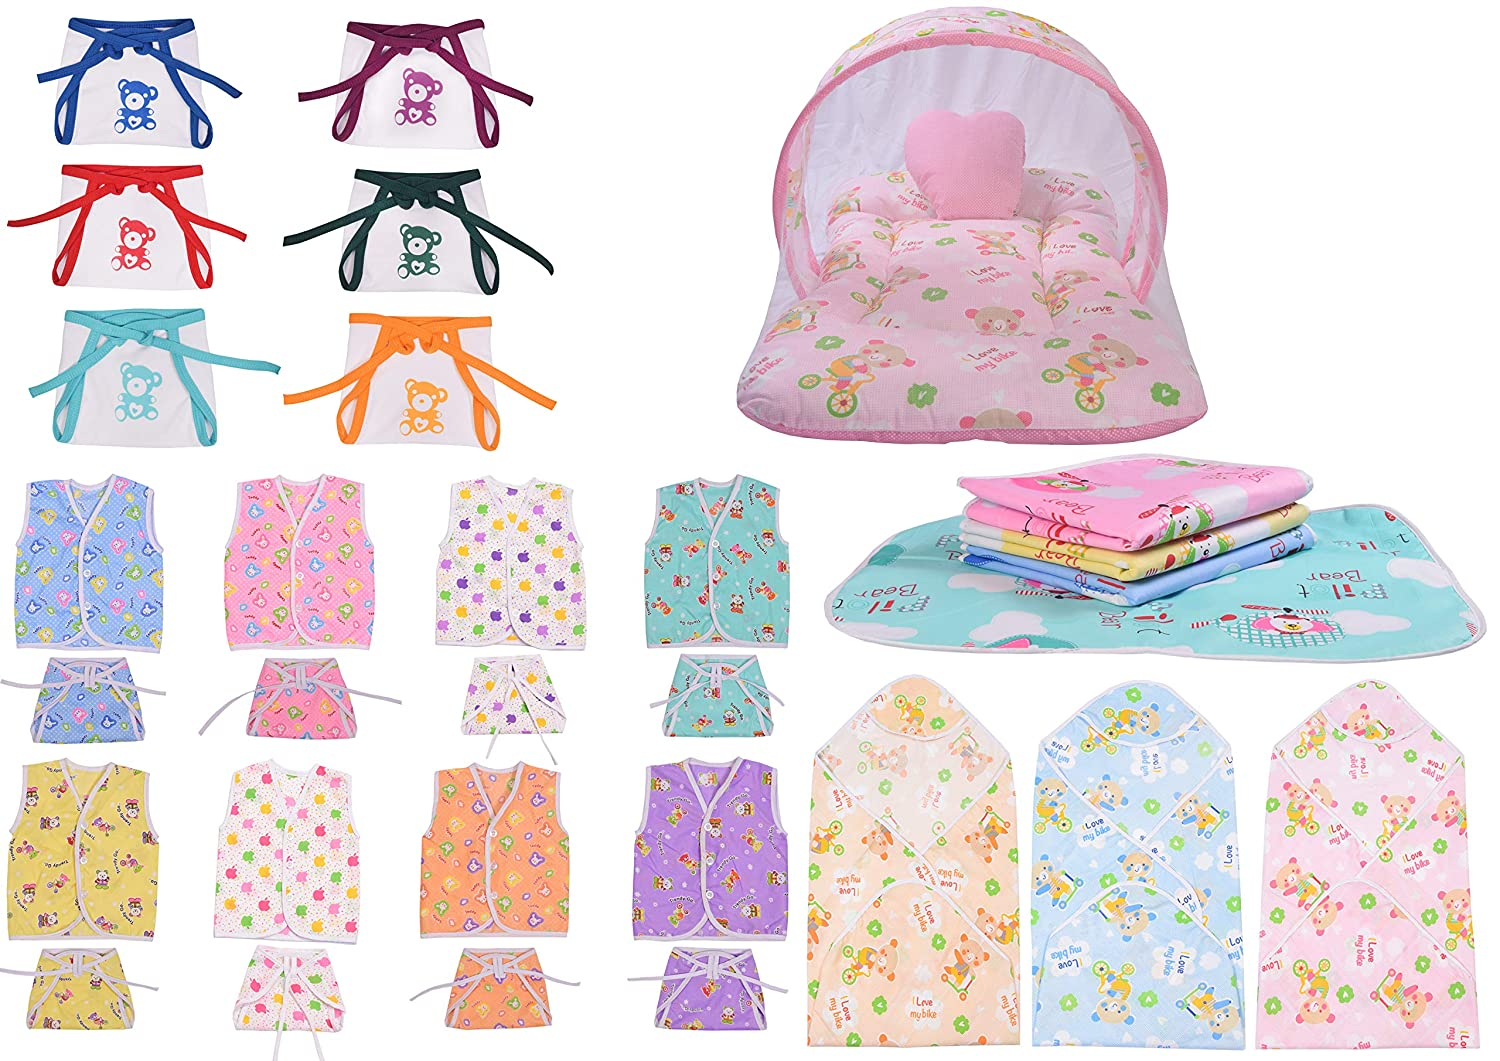 Baby Fly Baby Combo Pack of 8 Cotton Jhabla with 8 Cotton Nappies/Langot, 1 Net Bed, 3 Blankets, 4 Nappy Changing Mat and 6 Hosiery Cloth Nappies/Diapers (0-6 Months)